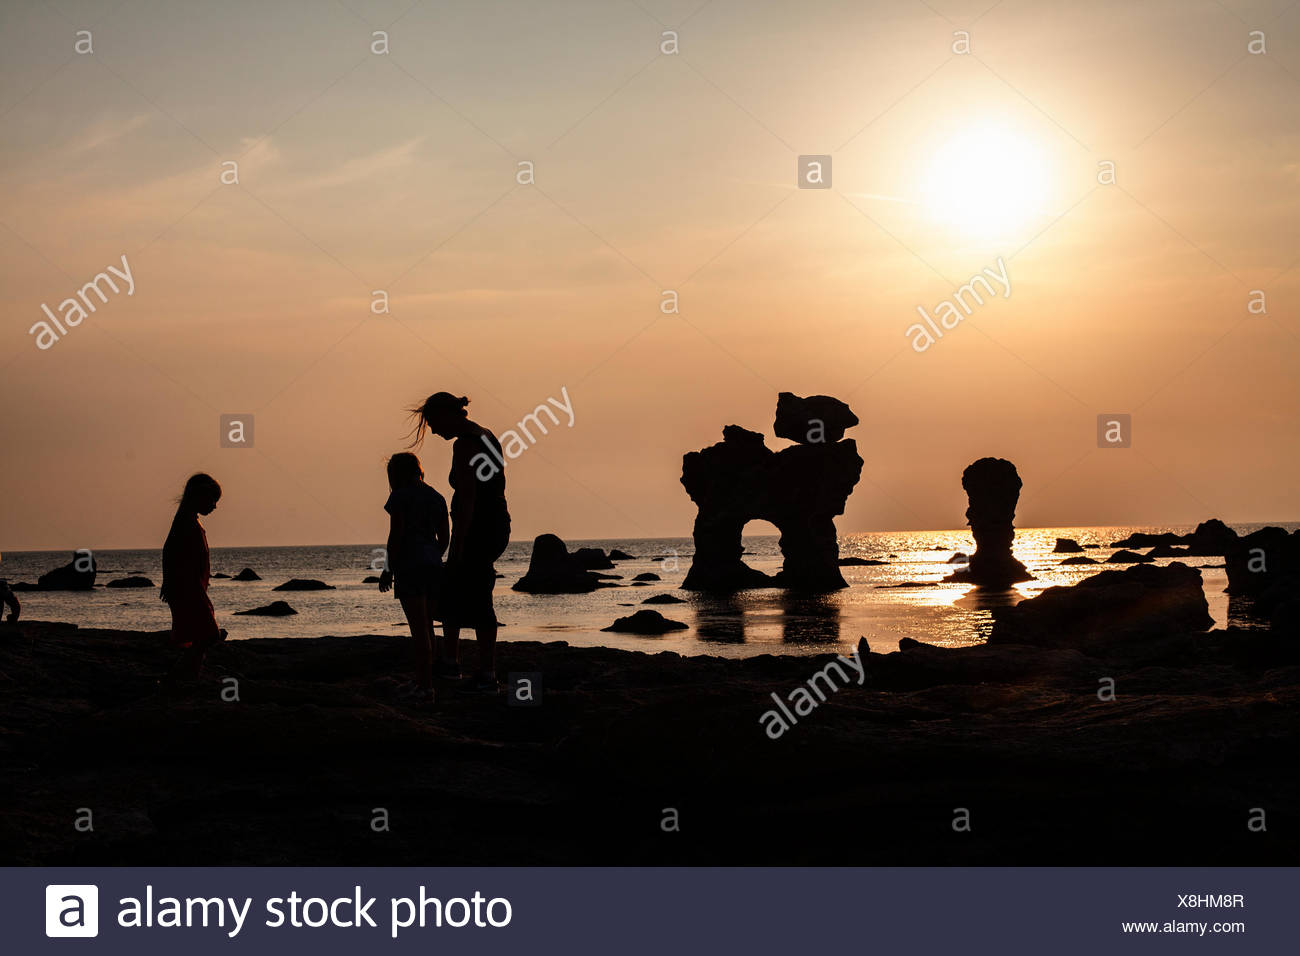 Sweden, Gotland, Faro, Gamle hamn, Silhouette of mother and children (8-9, 10-11) on beach at sunset Stock Photo